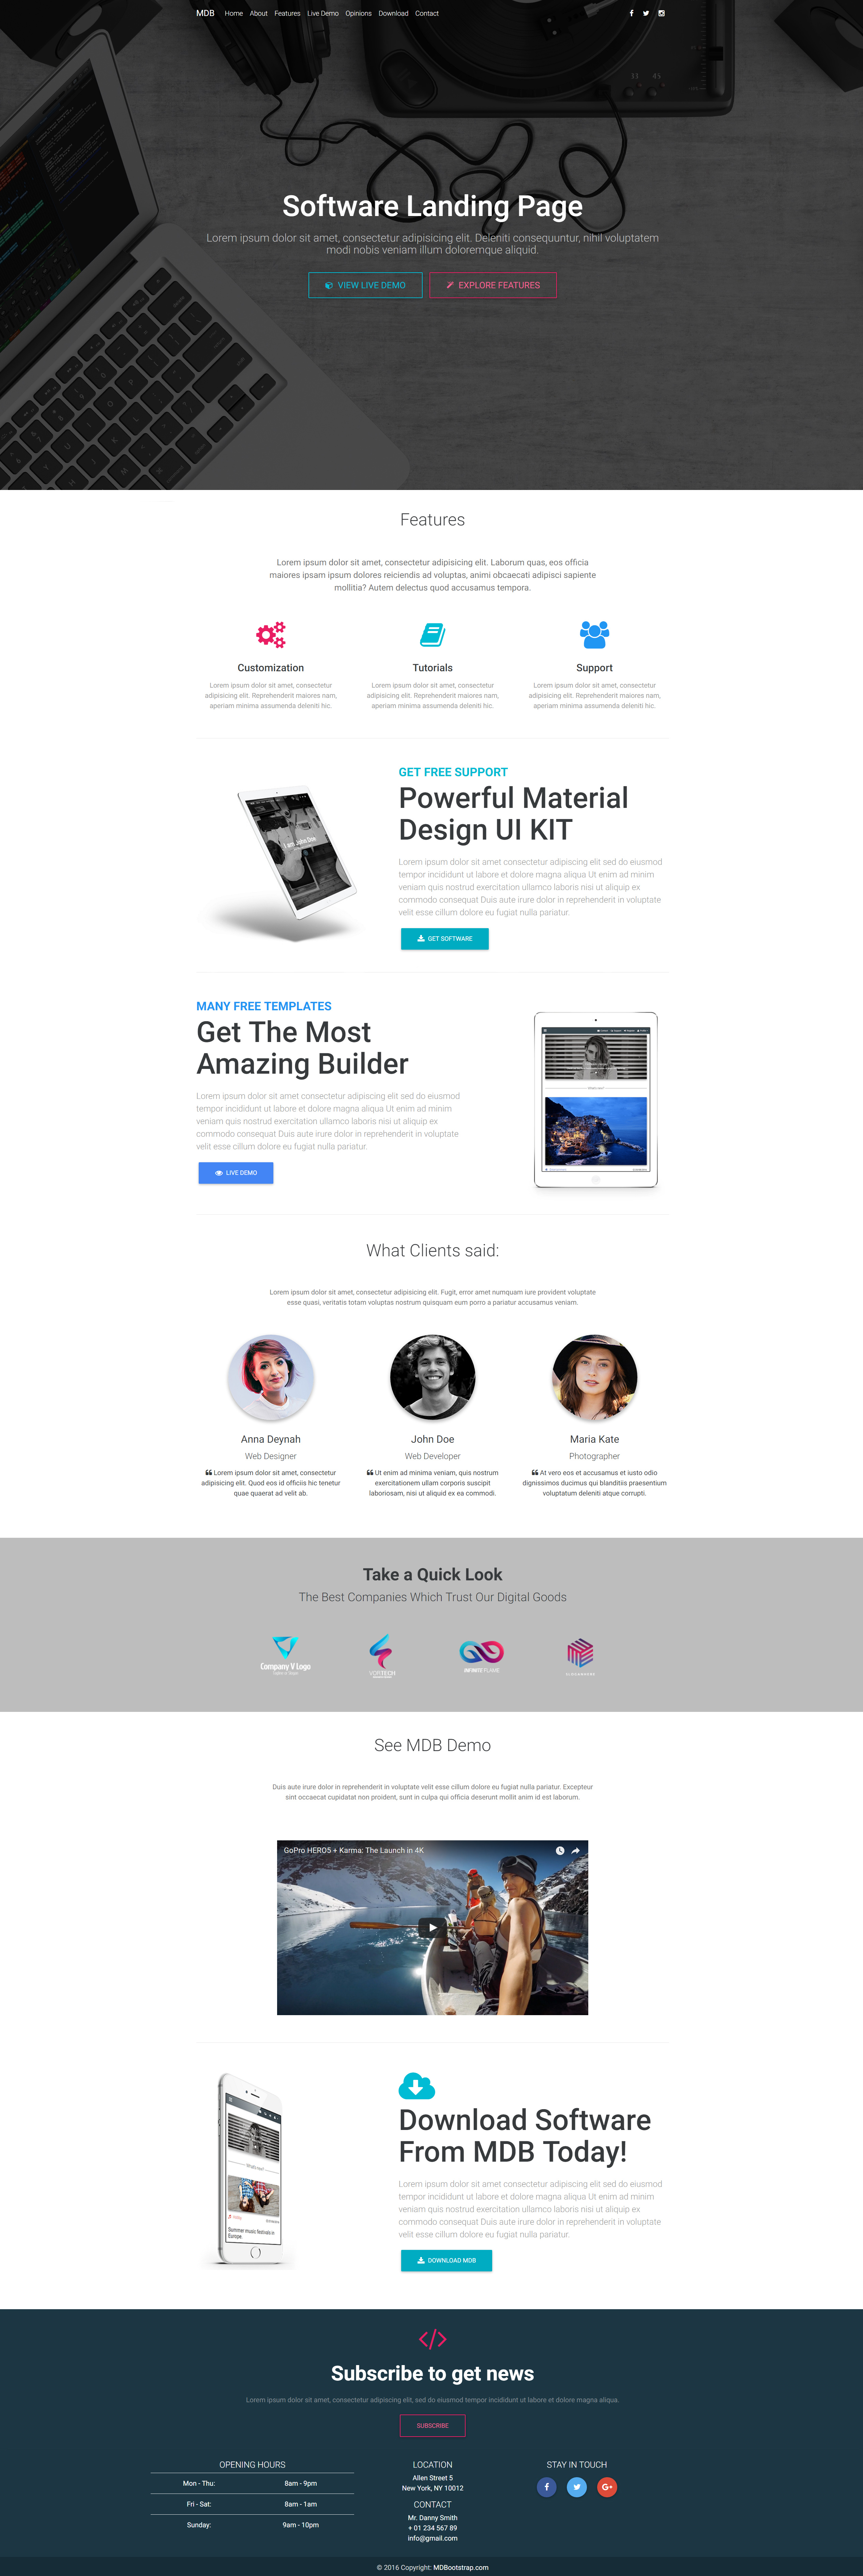 Software Landing Page Template created with Material Design for ...